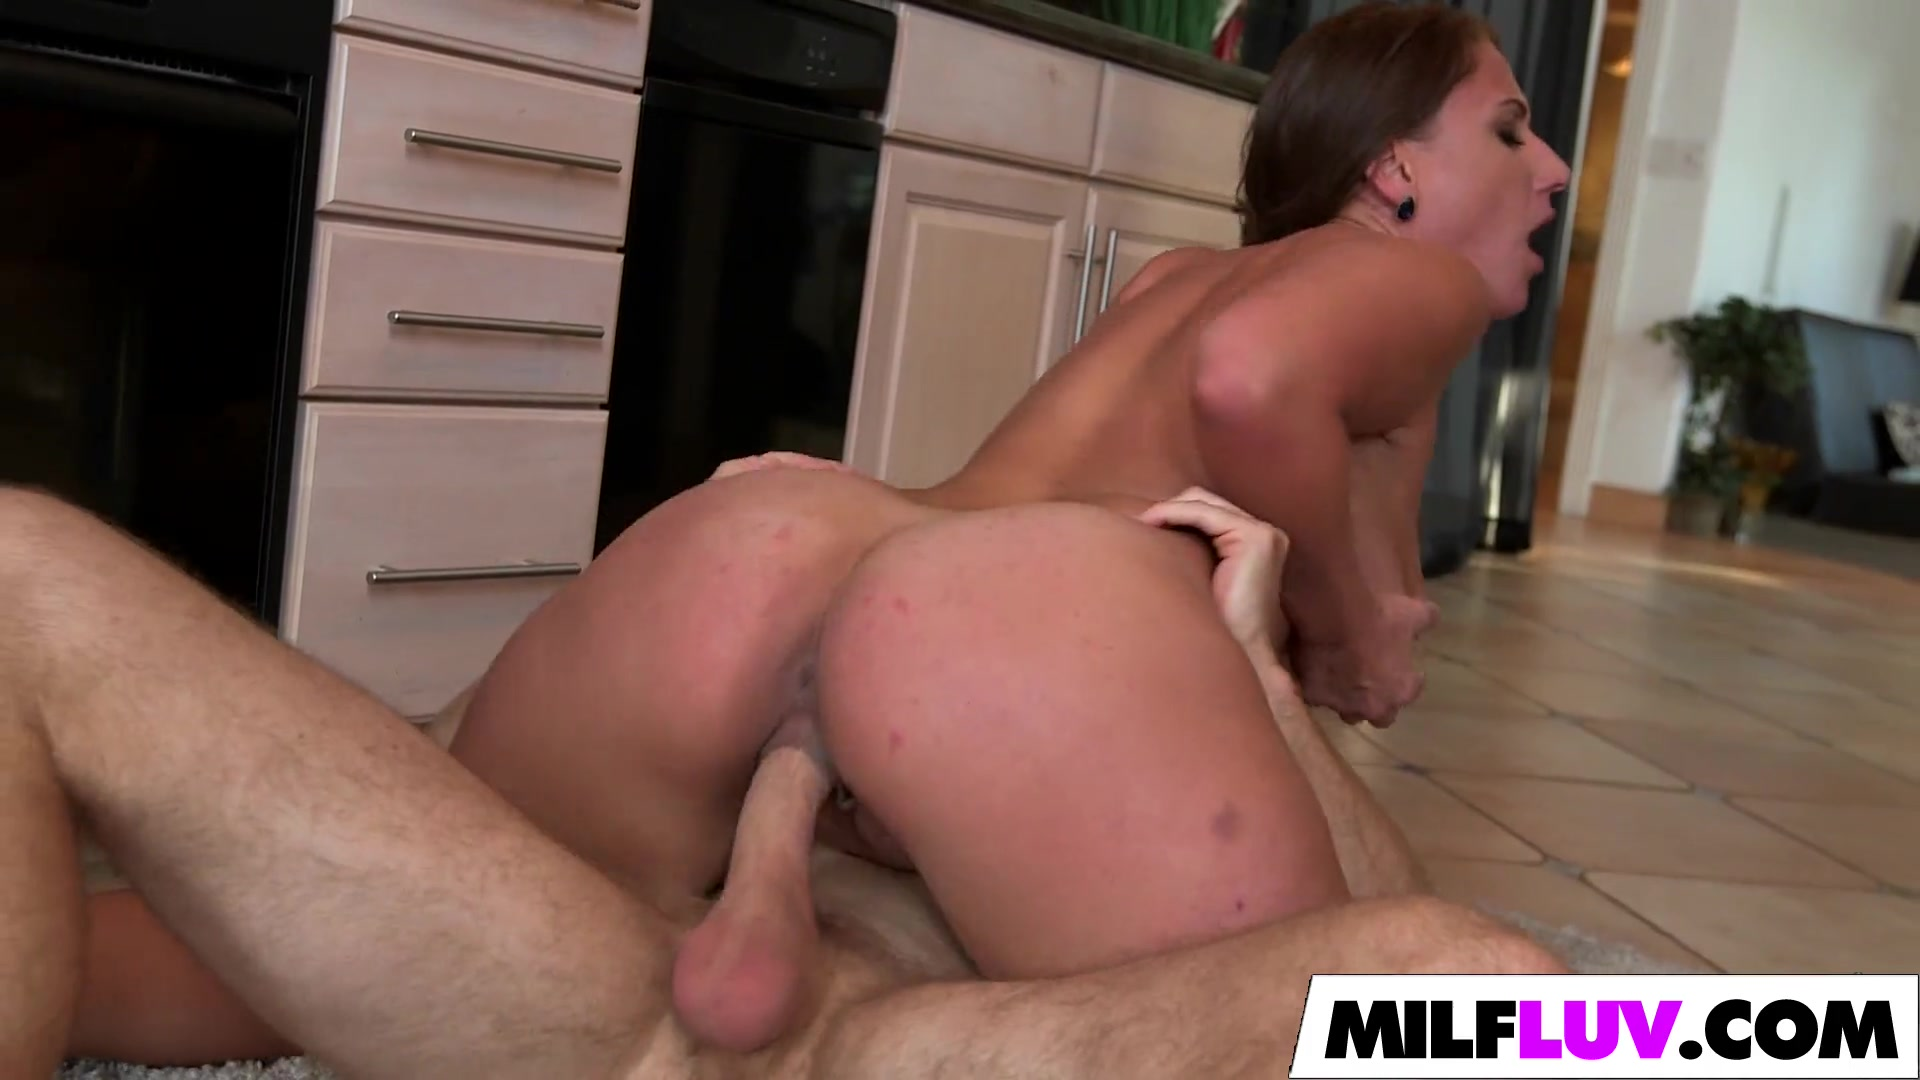 Porn archive Milf chronicles